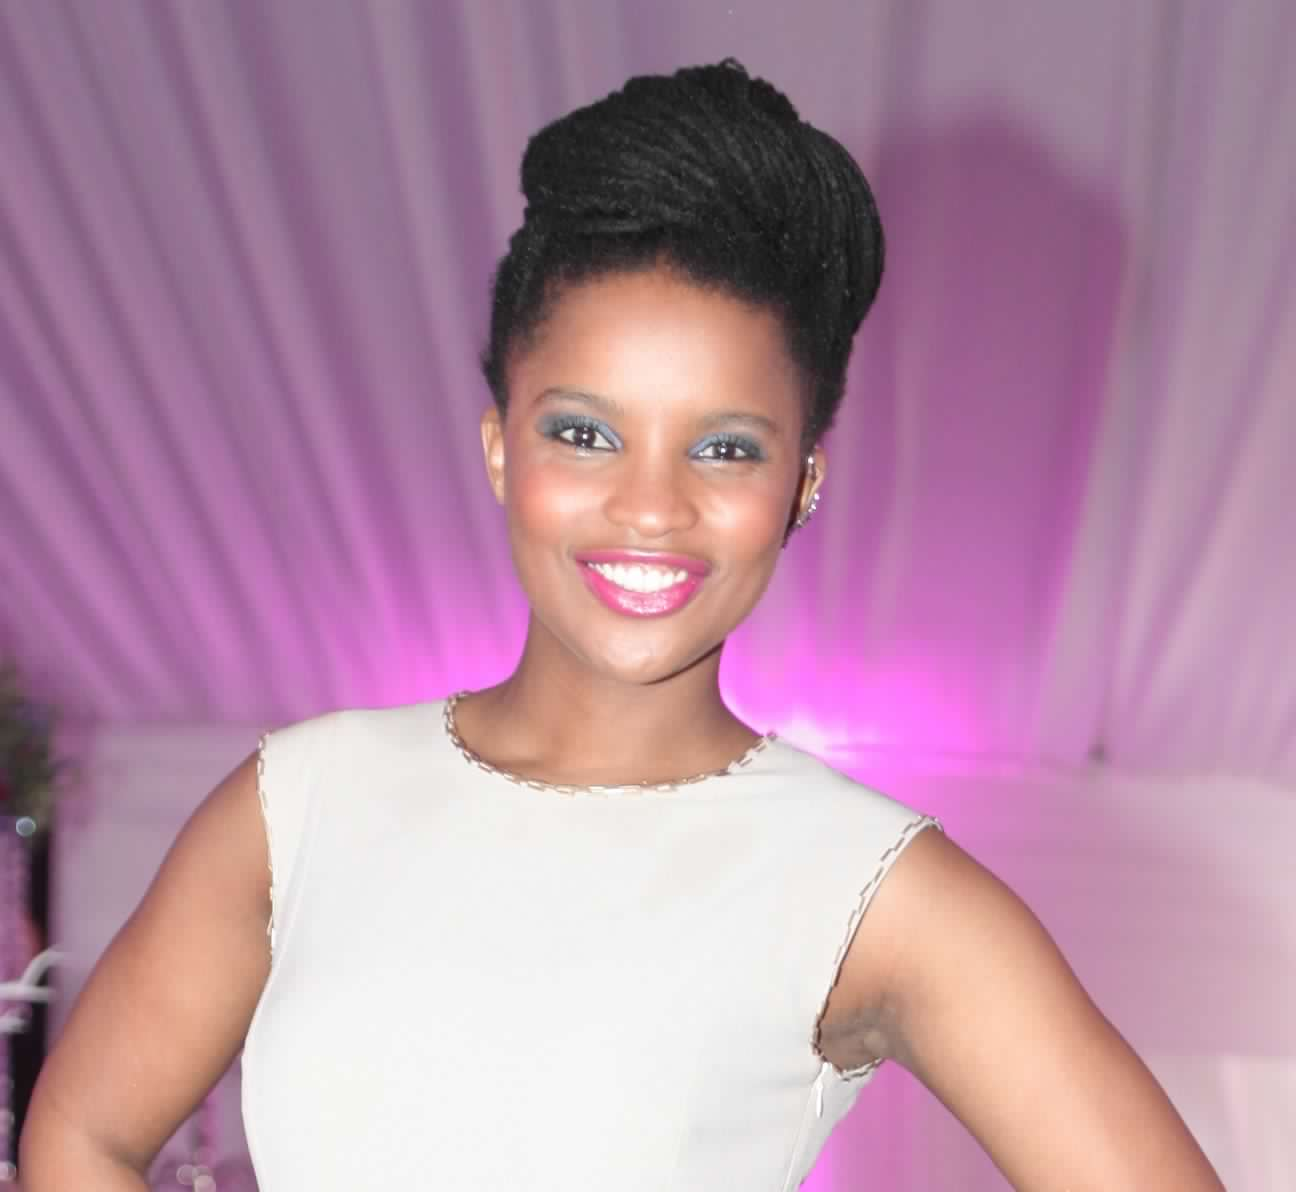 Photo of Zizo Bheda Lands A Big Radio Gig At Umhlobo Wenene